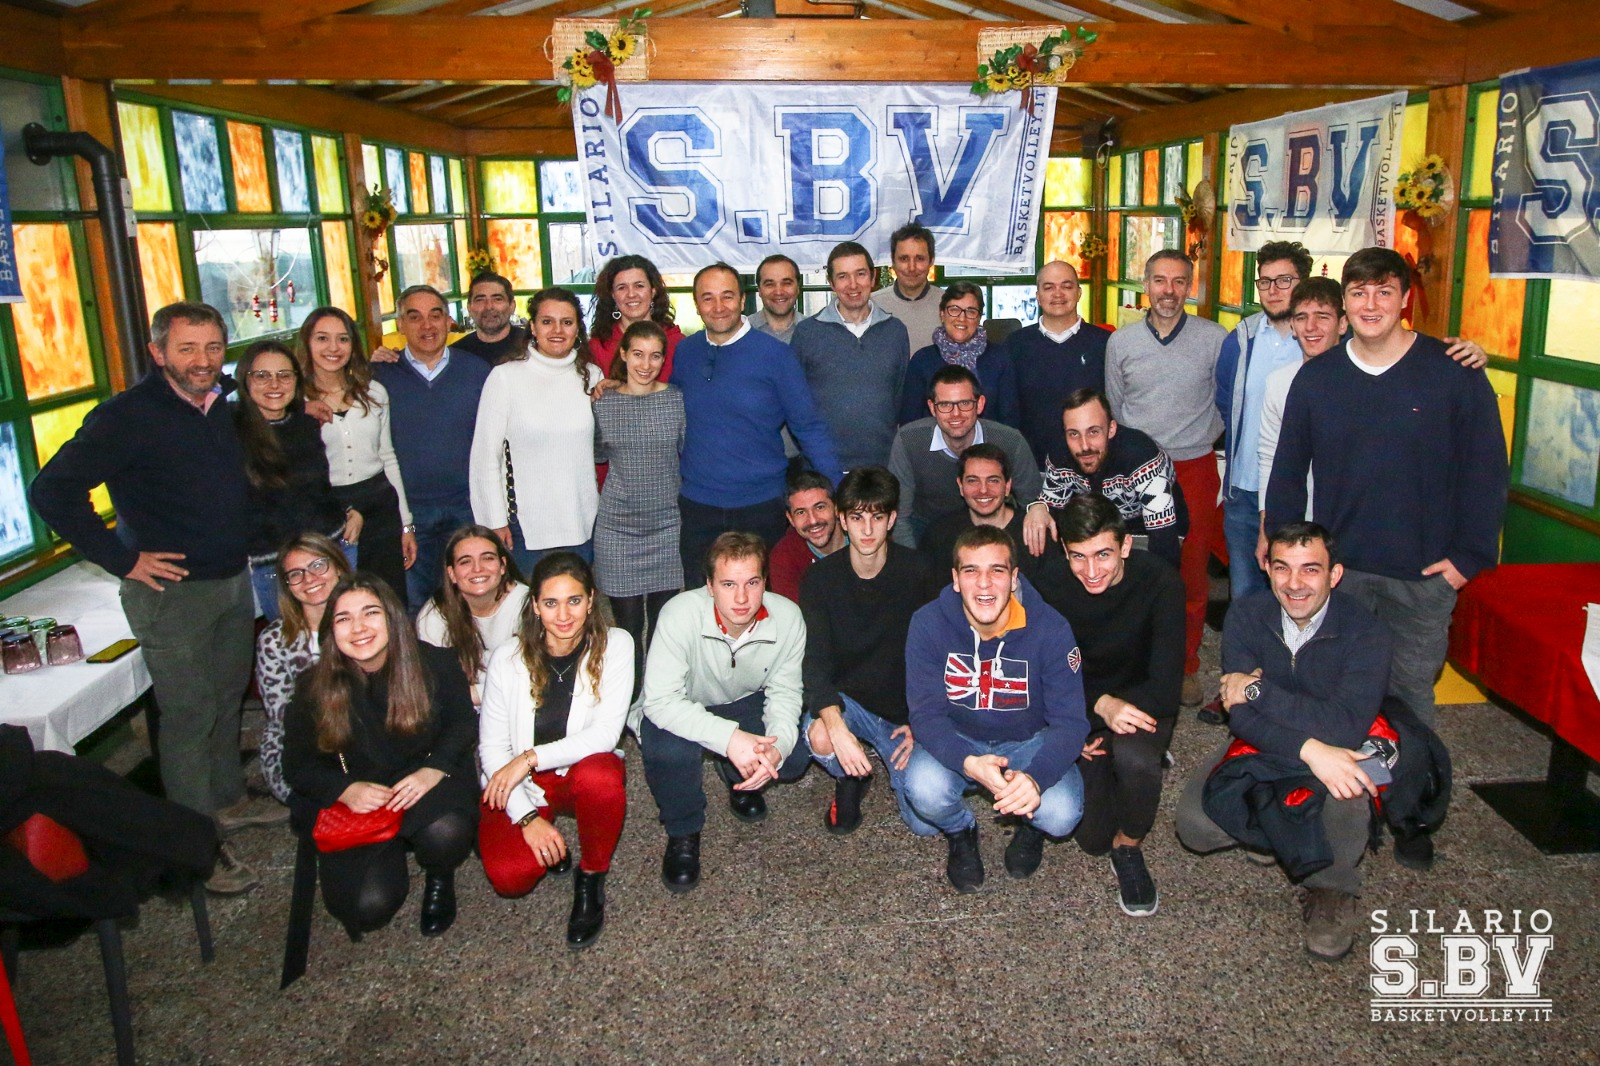 Natale sbv 2018 staff